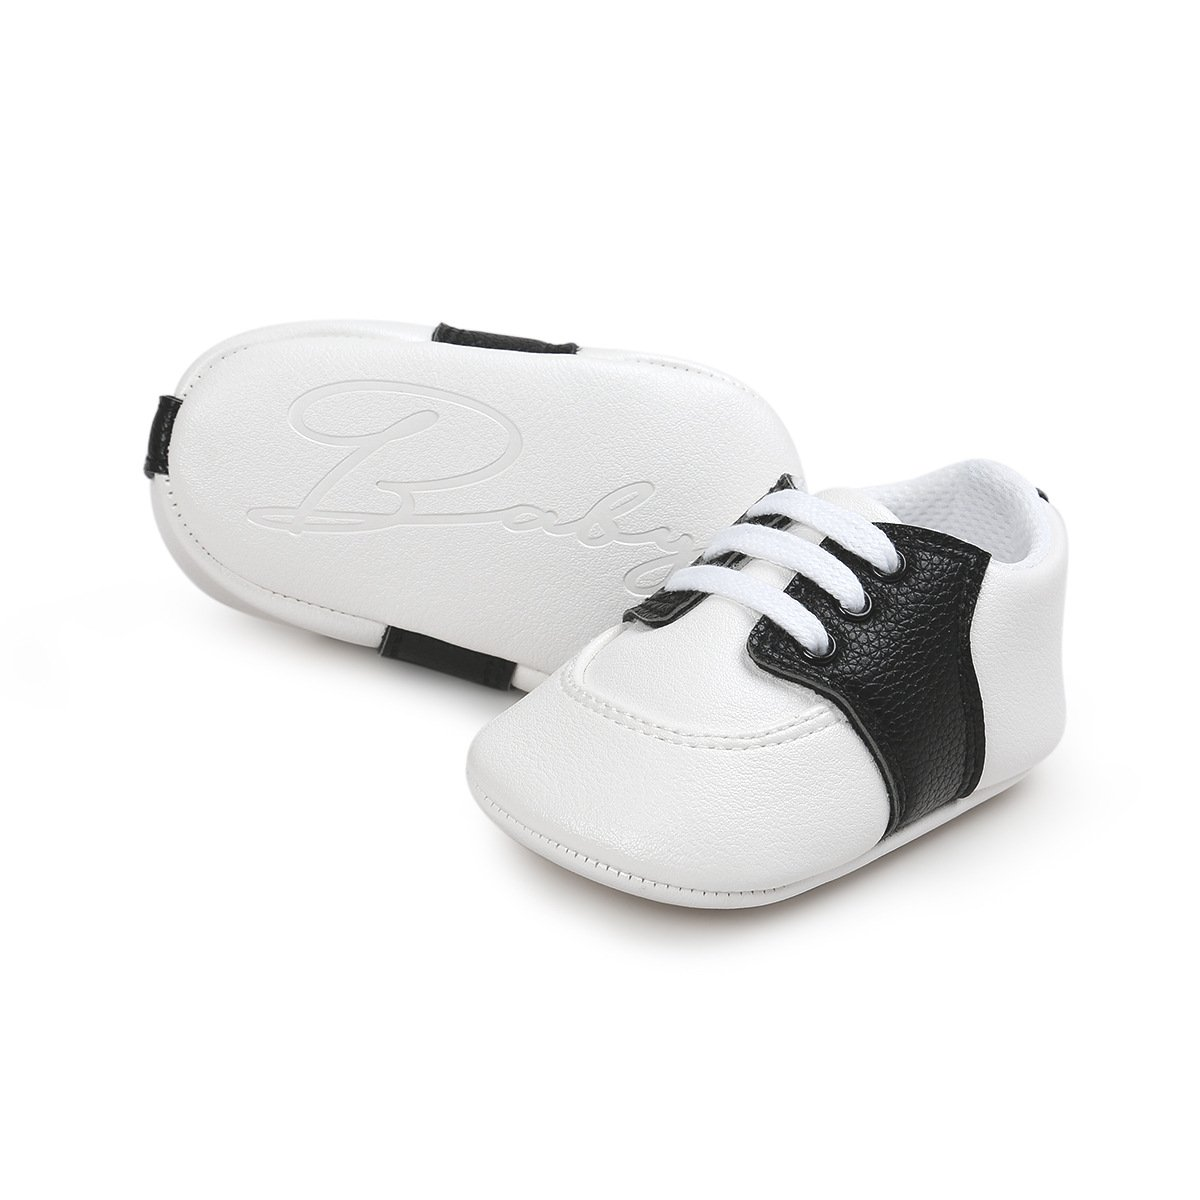 ecb1caa5 Amazon.com | Fire Frog Baby Saddle Shoes for Boys Girl Infant Toddlers  Lace-up Sneakers | Sneakers